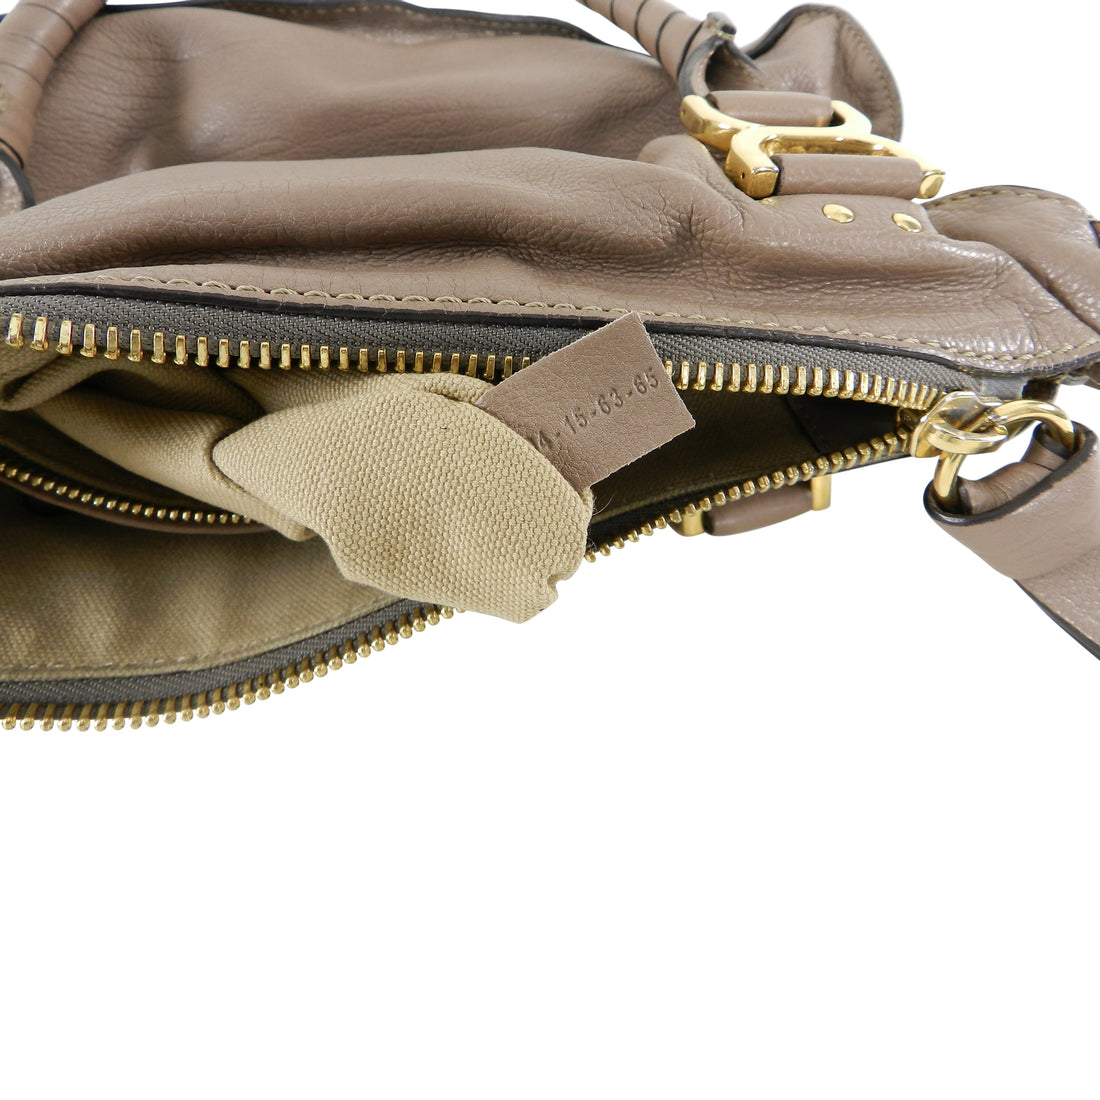 Chloe Marcie Large Satchel Bag in Taupe Leather